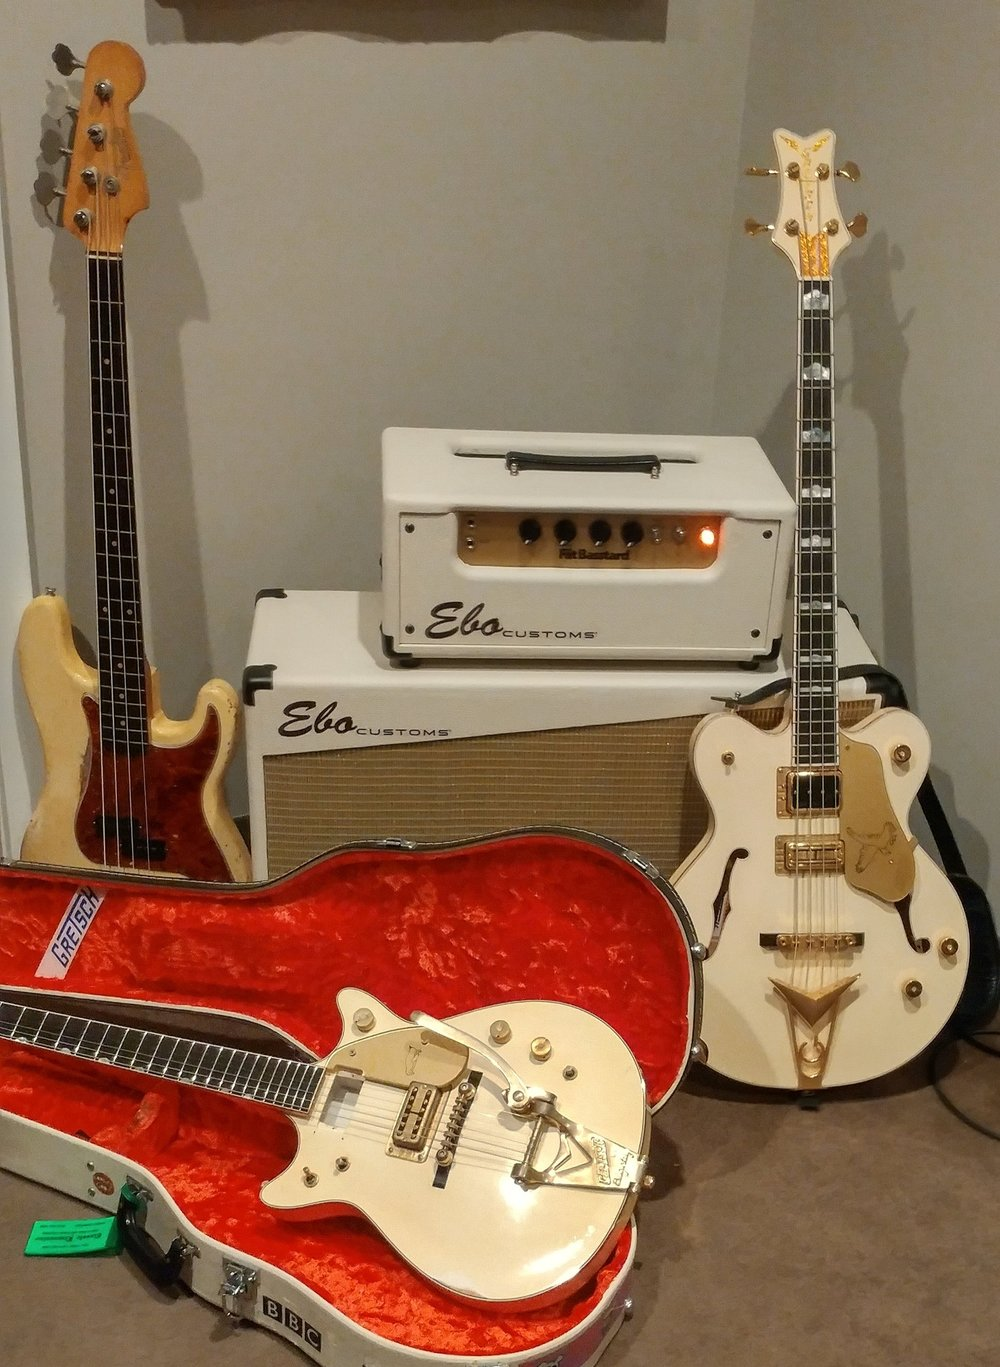 Tom Petersson came in for overdubs with this stuff…was not supposed to be a photo op, but C'MON…too cool.